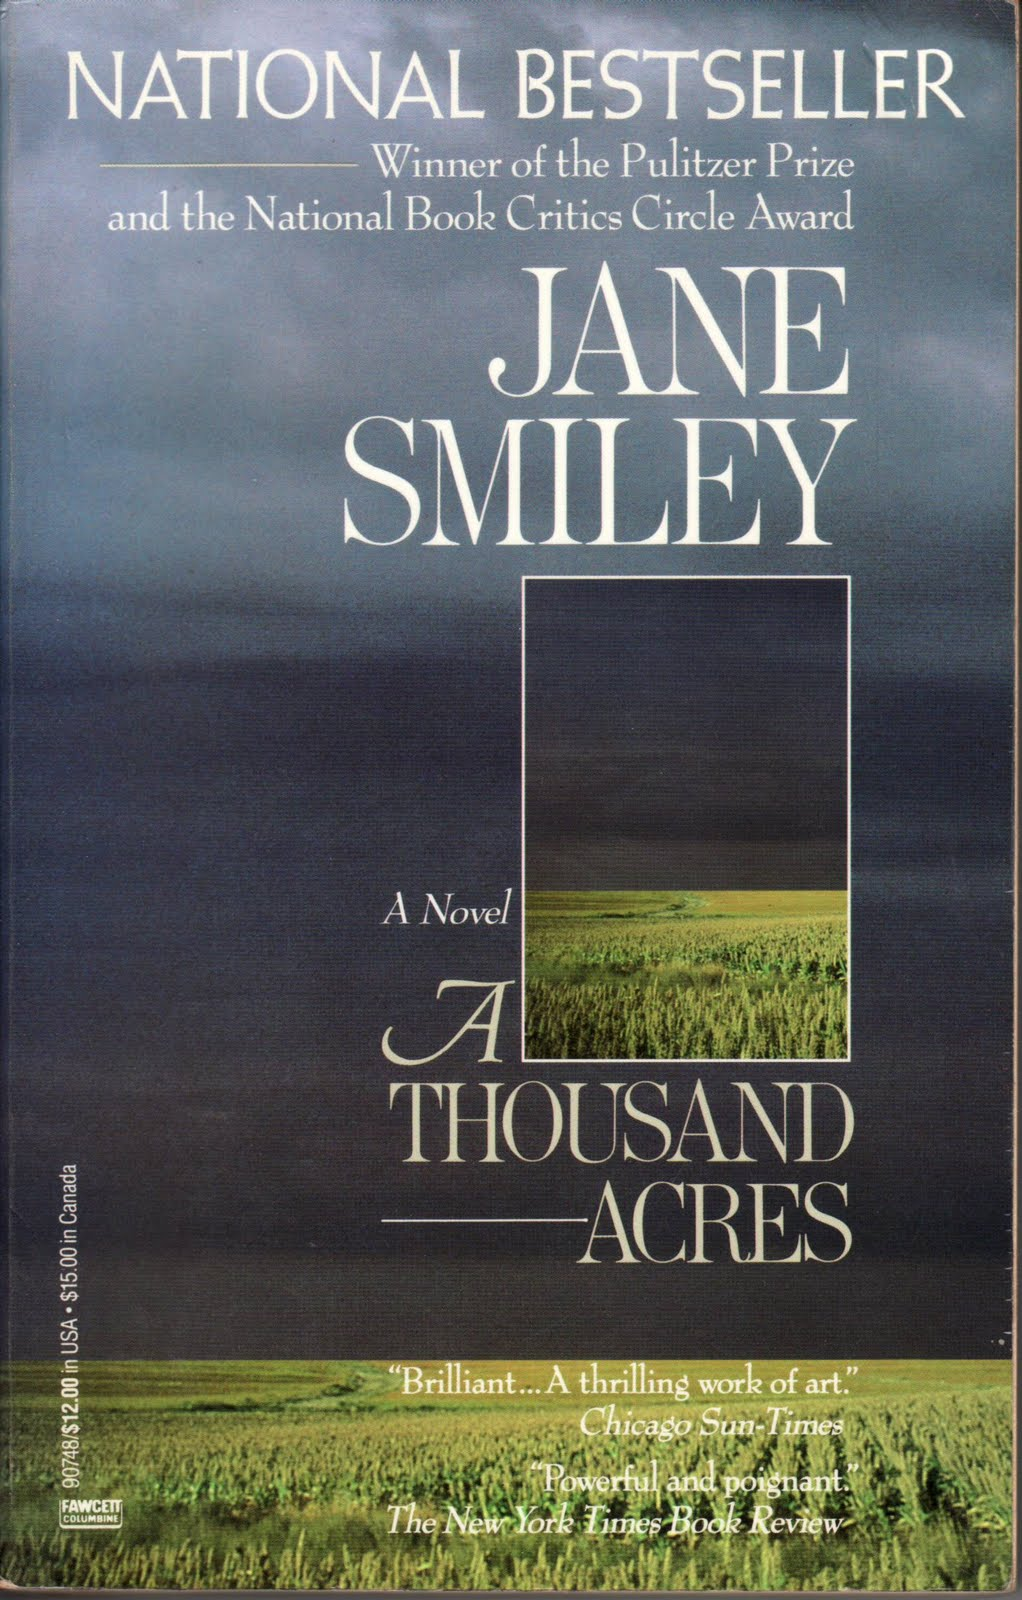 a comparison of jane smileys book a thousand acres and king lear by william shakespeare Bwilcox-1234 / chatscript  adam_smith john_keynes william_shakespeare william  cutting_sword trust_me_book the_mad_king angel_pavement the.